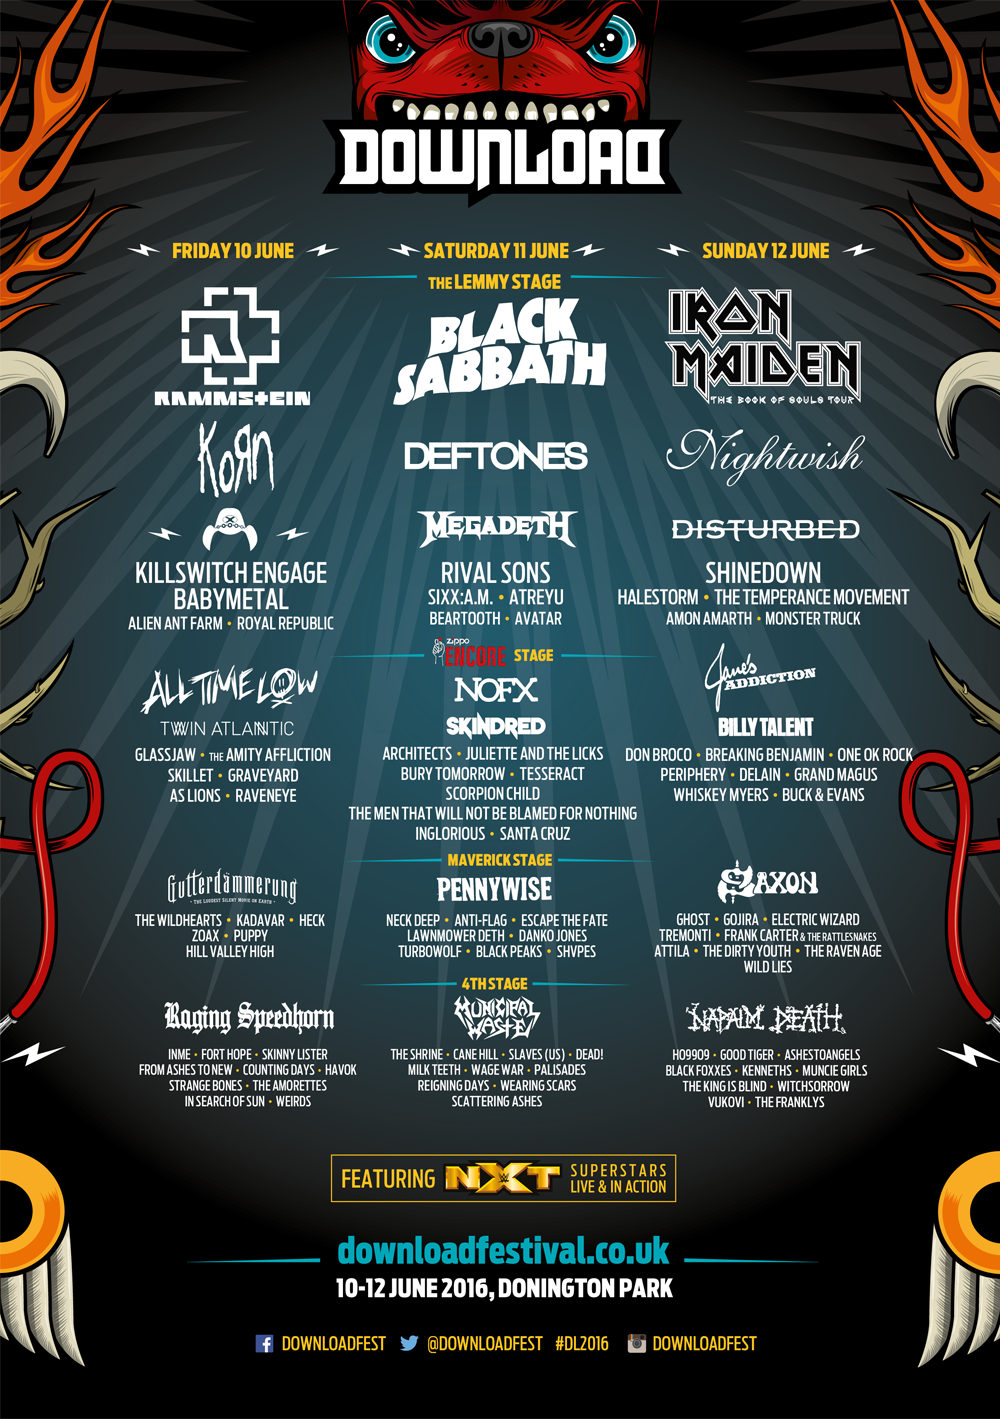 Download Festival adds even more names to this year's line